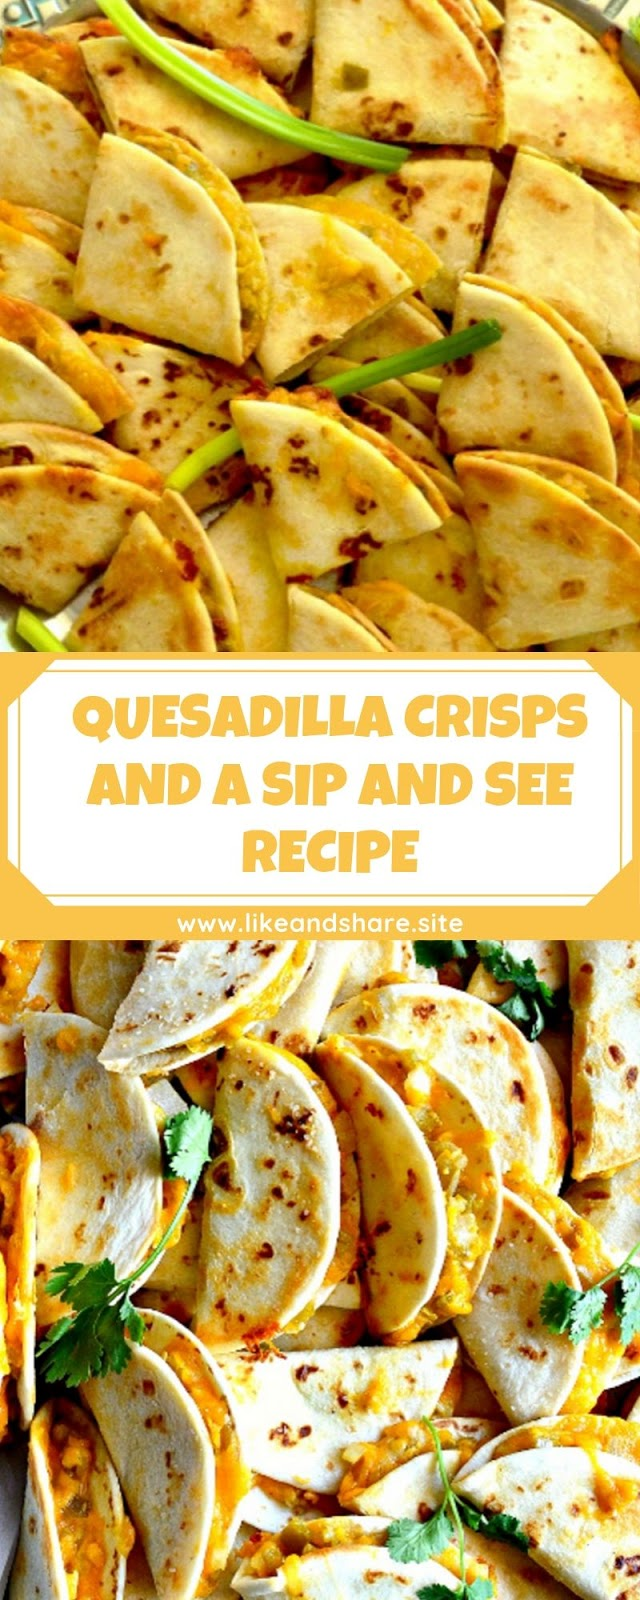 QUESADILLA CRISPS AND A SIP AND SEE RECIPE